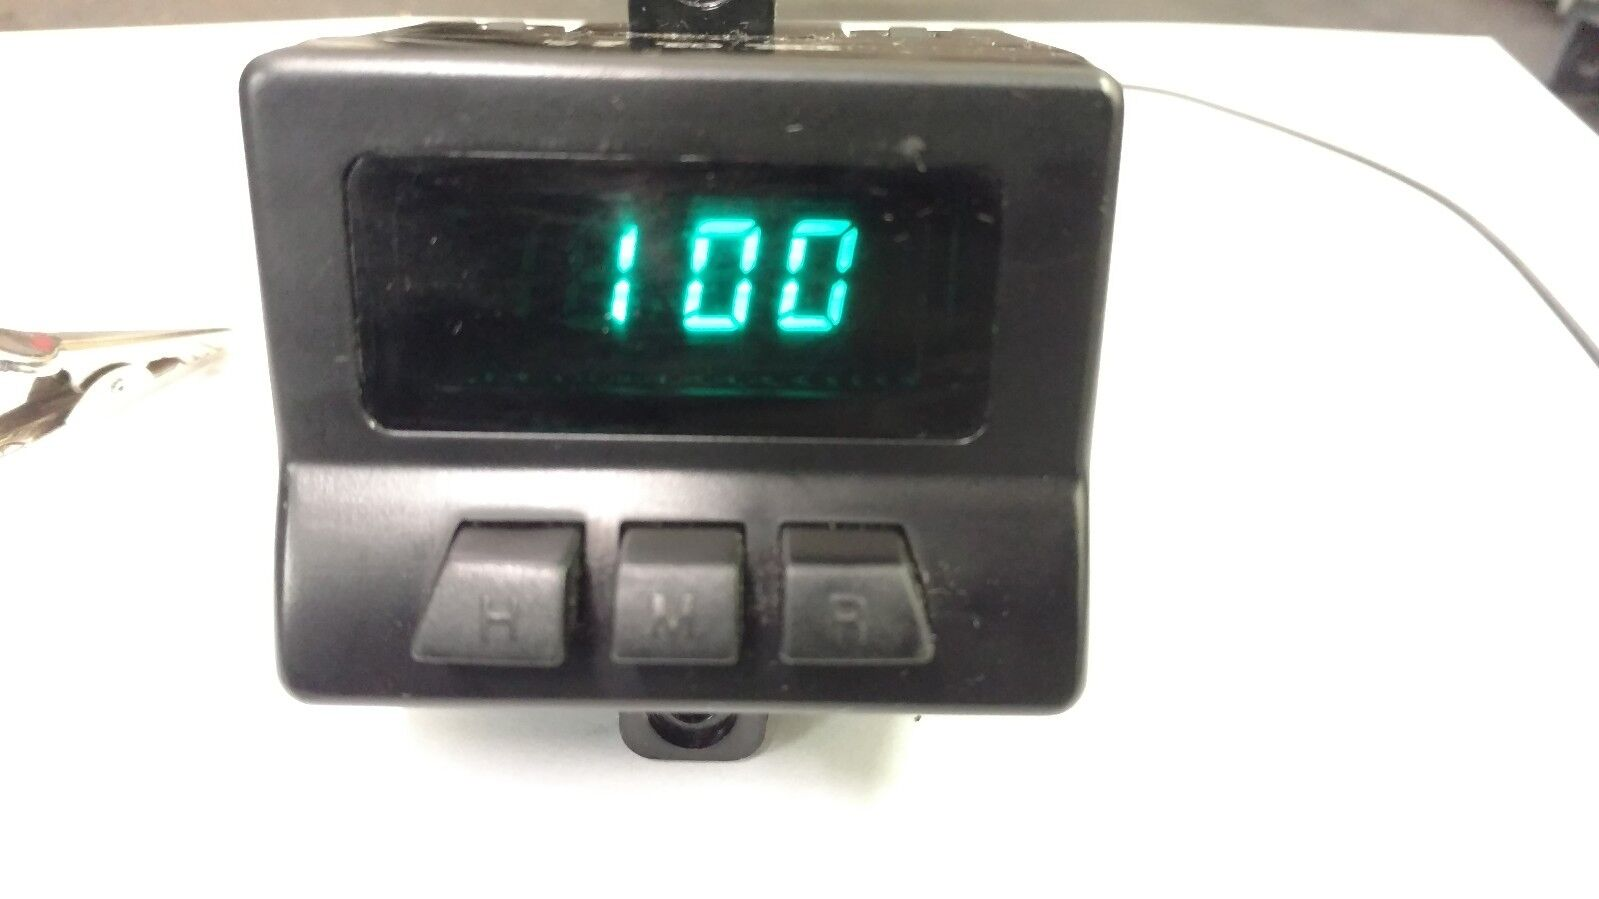 Used 2004 Hyundai Sonata Dash Parts For Sale Fuse Box 2001 Kia Spectra Digital Clock 959003c000